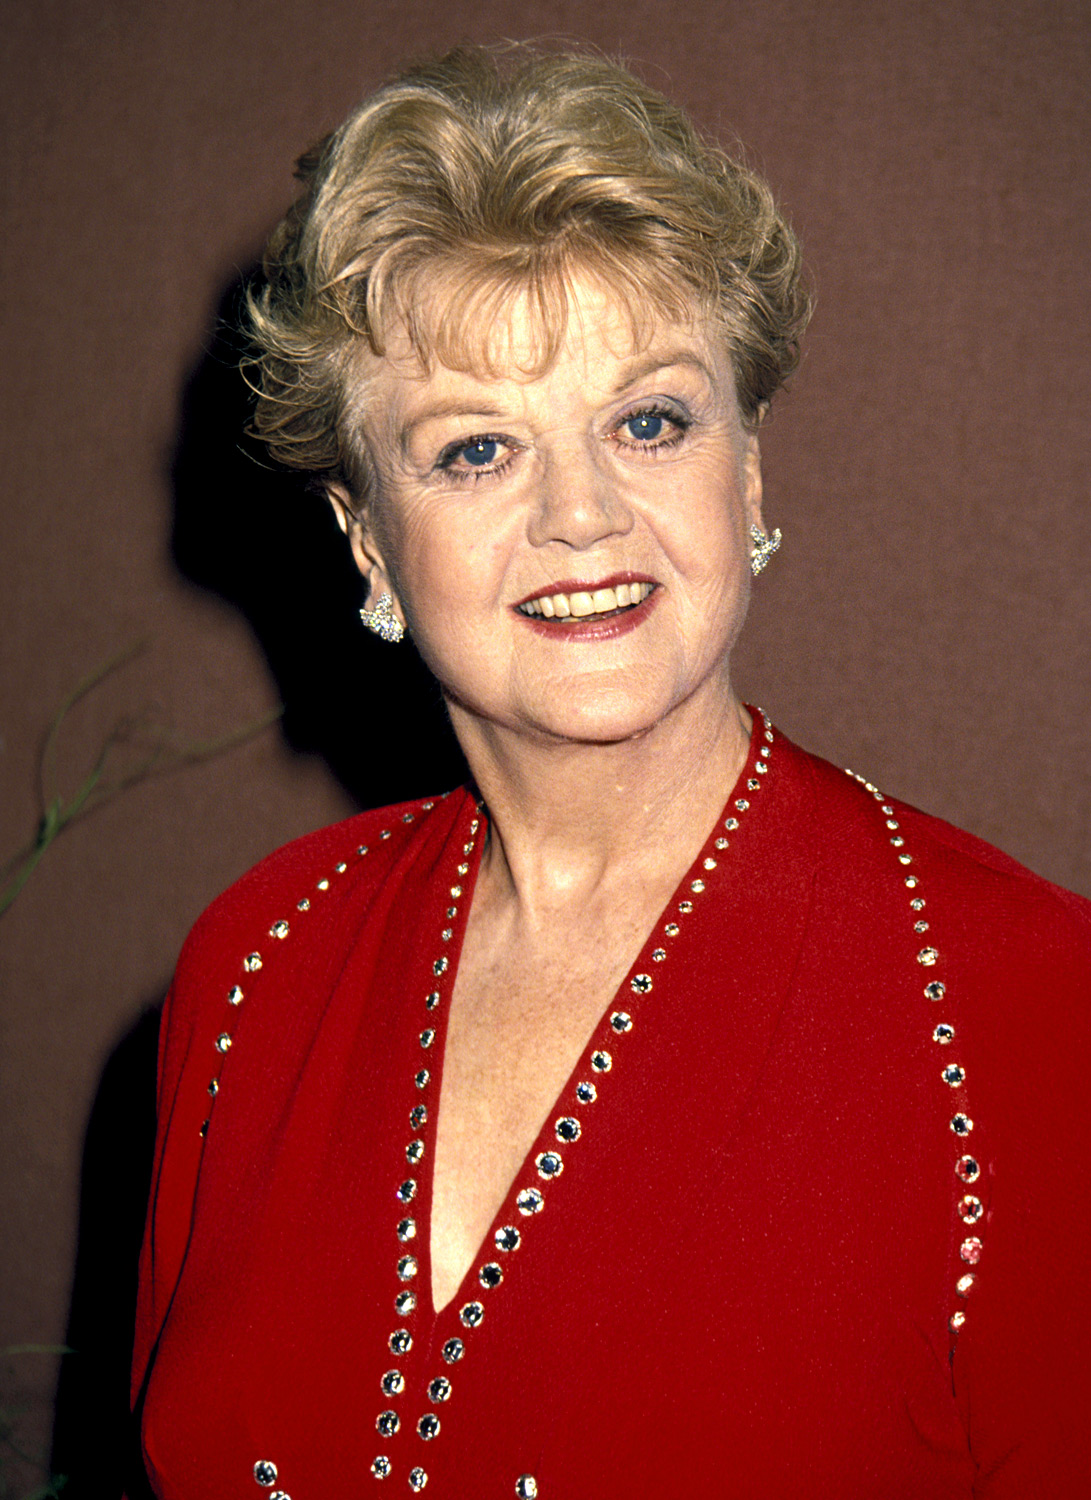 Following successful Tony Awards hosting stints, Murder She Wrote 's legendary leading lady took the lead during the 1993 Emmys.